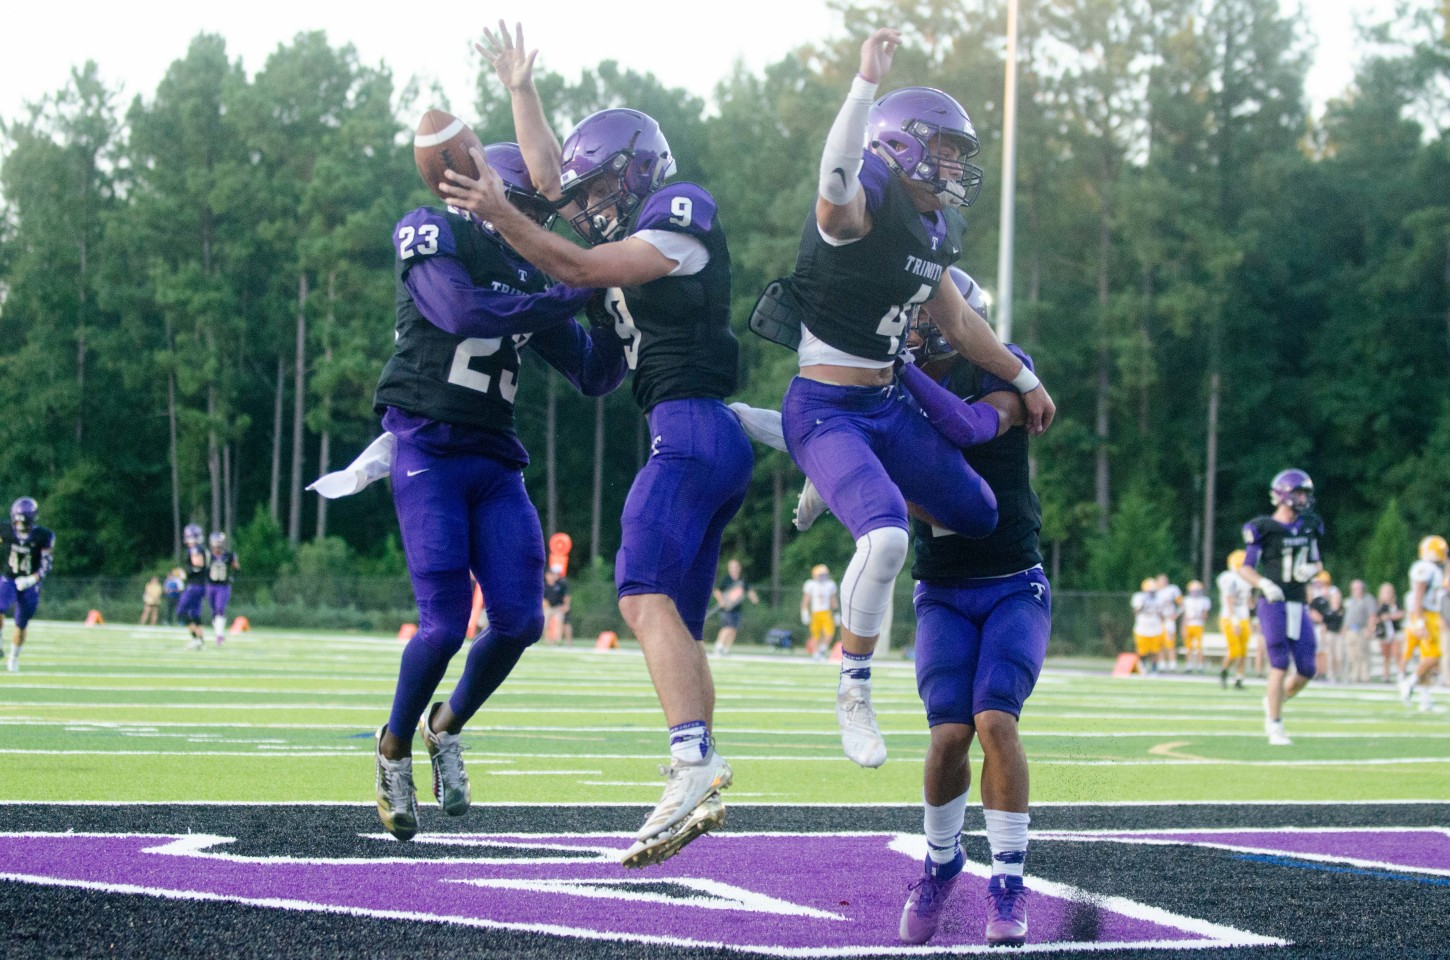 Trinity is likely to host a playoff game despite finishing fourth due to its Class A power ranking.